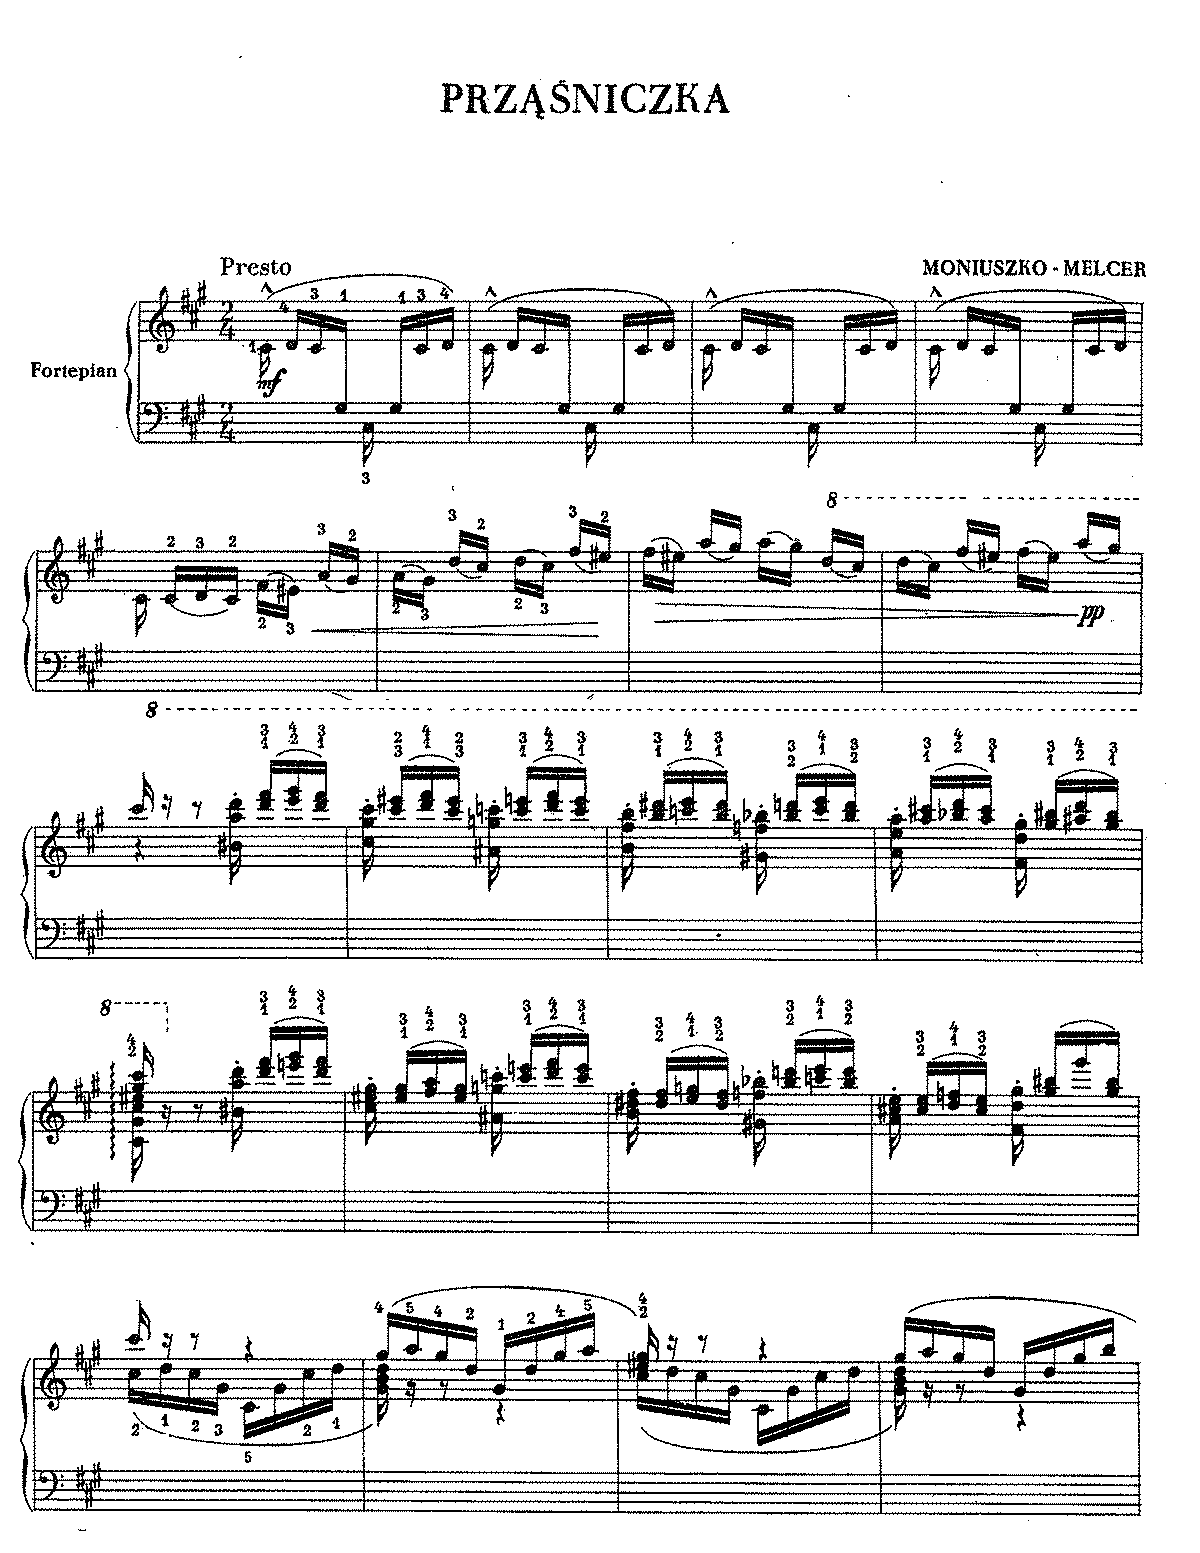 PMLP635151-Moniuszko-Melcer - PRZASNICZKA (Song Transcription).pdf